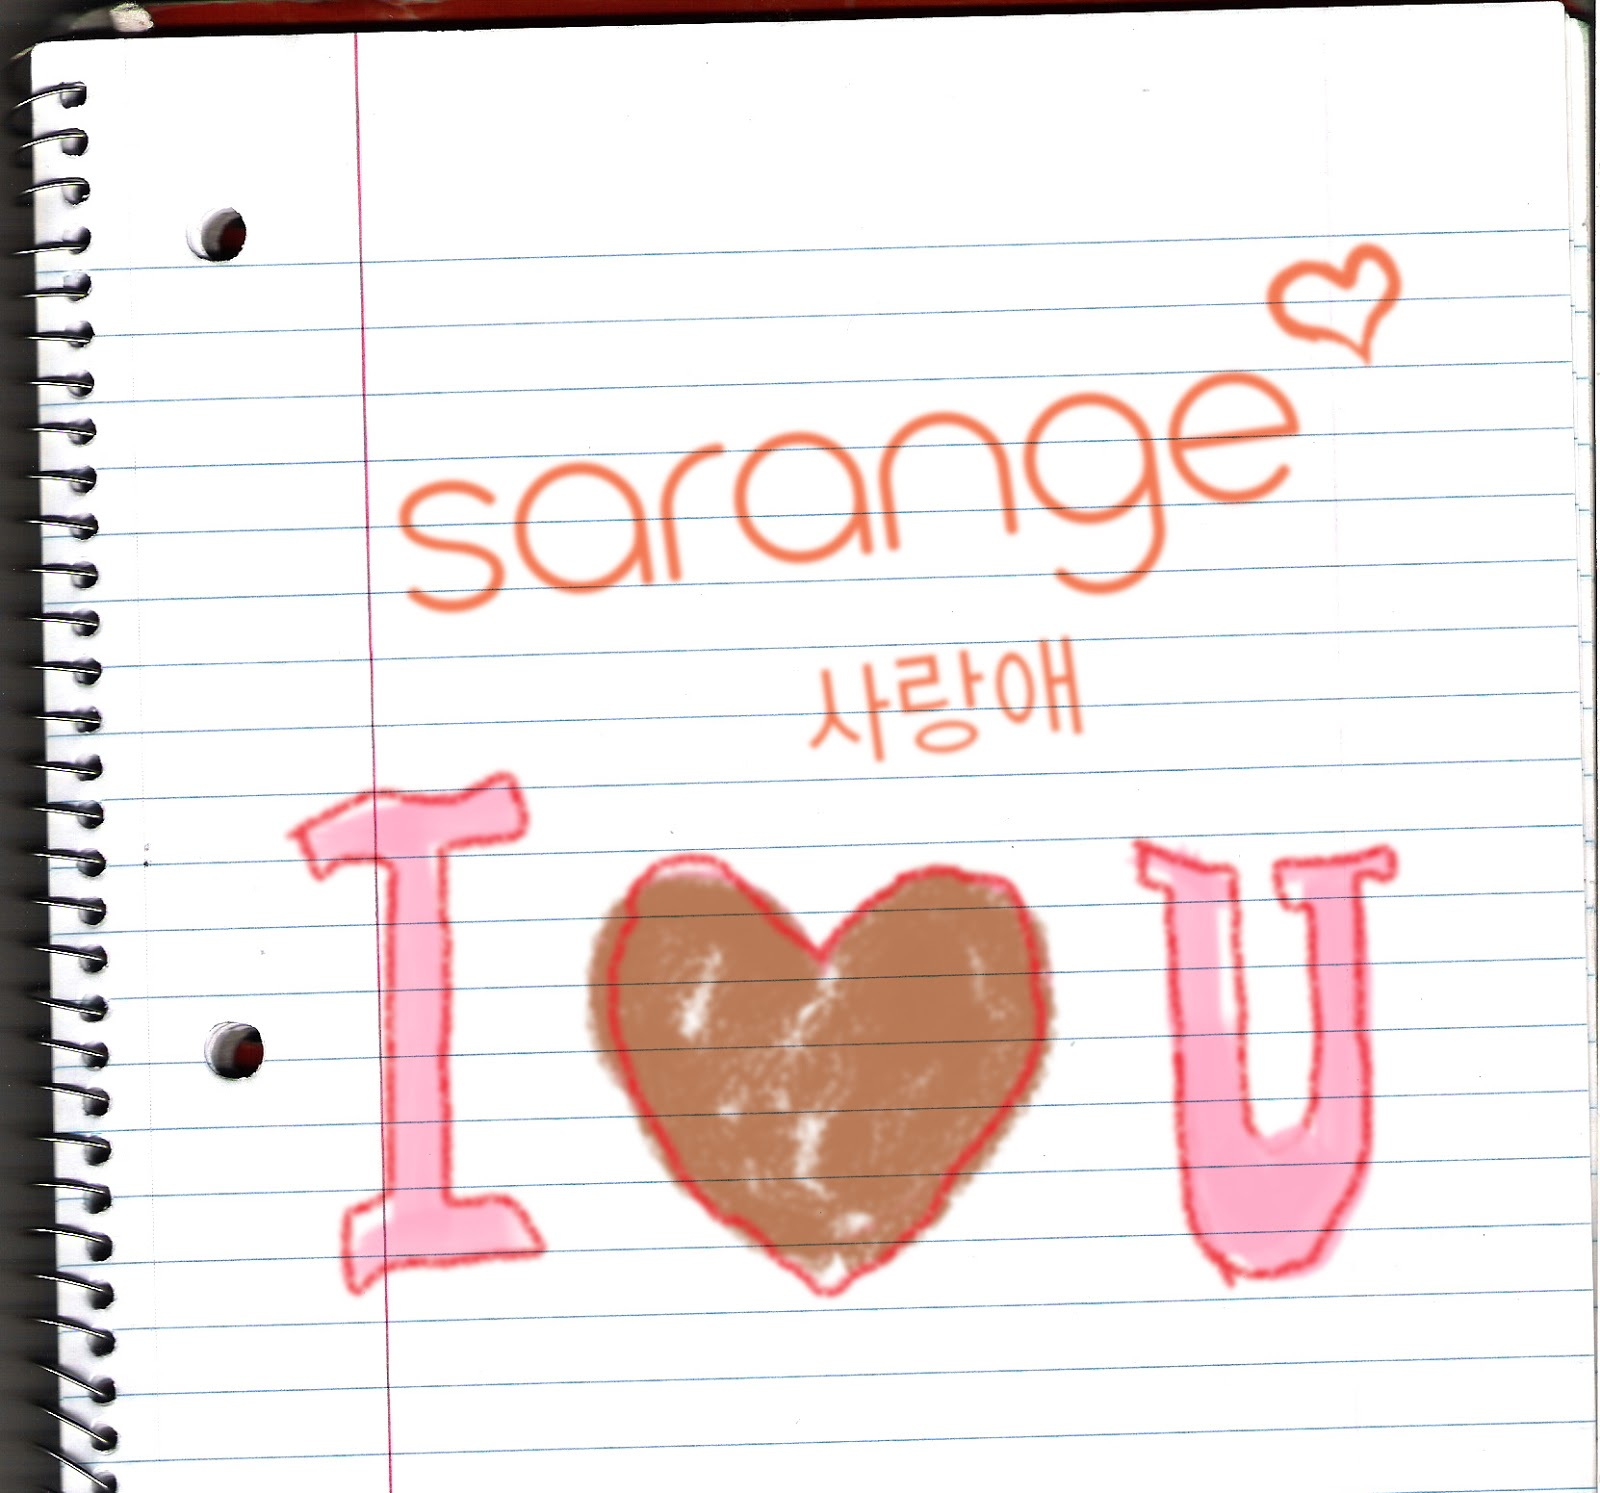 7 Gambar Tulisan Korea I Love You Saranghae GRAFIS MEDIA